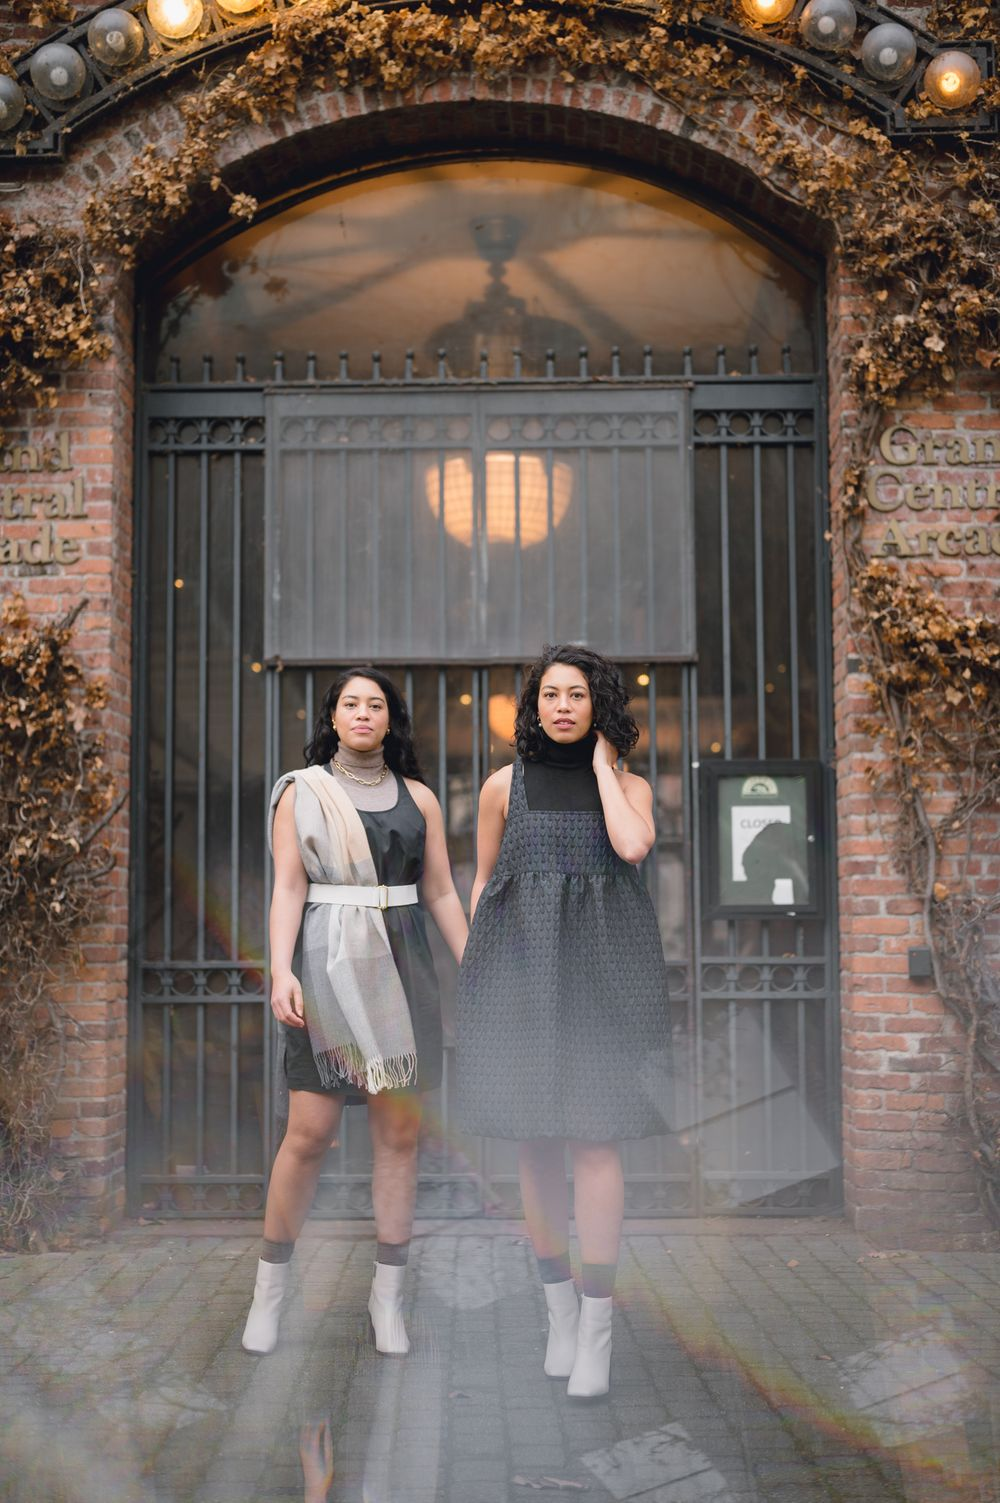 Clothing campaign brand portrait by Tiffany Kelterer of 2 woman in brick alley Pioneer Square Seattle